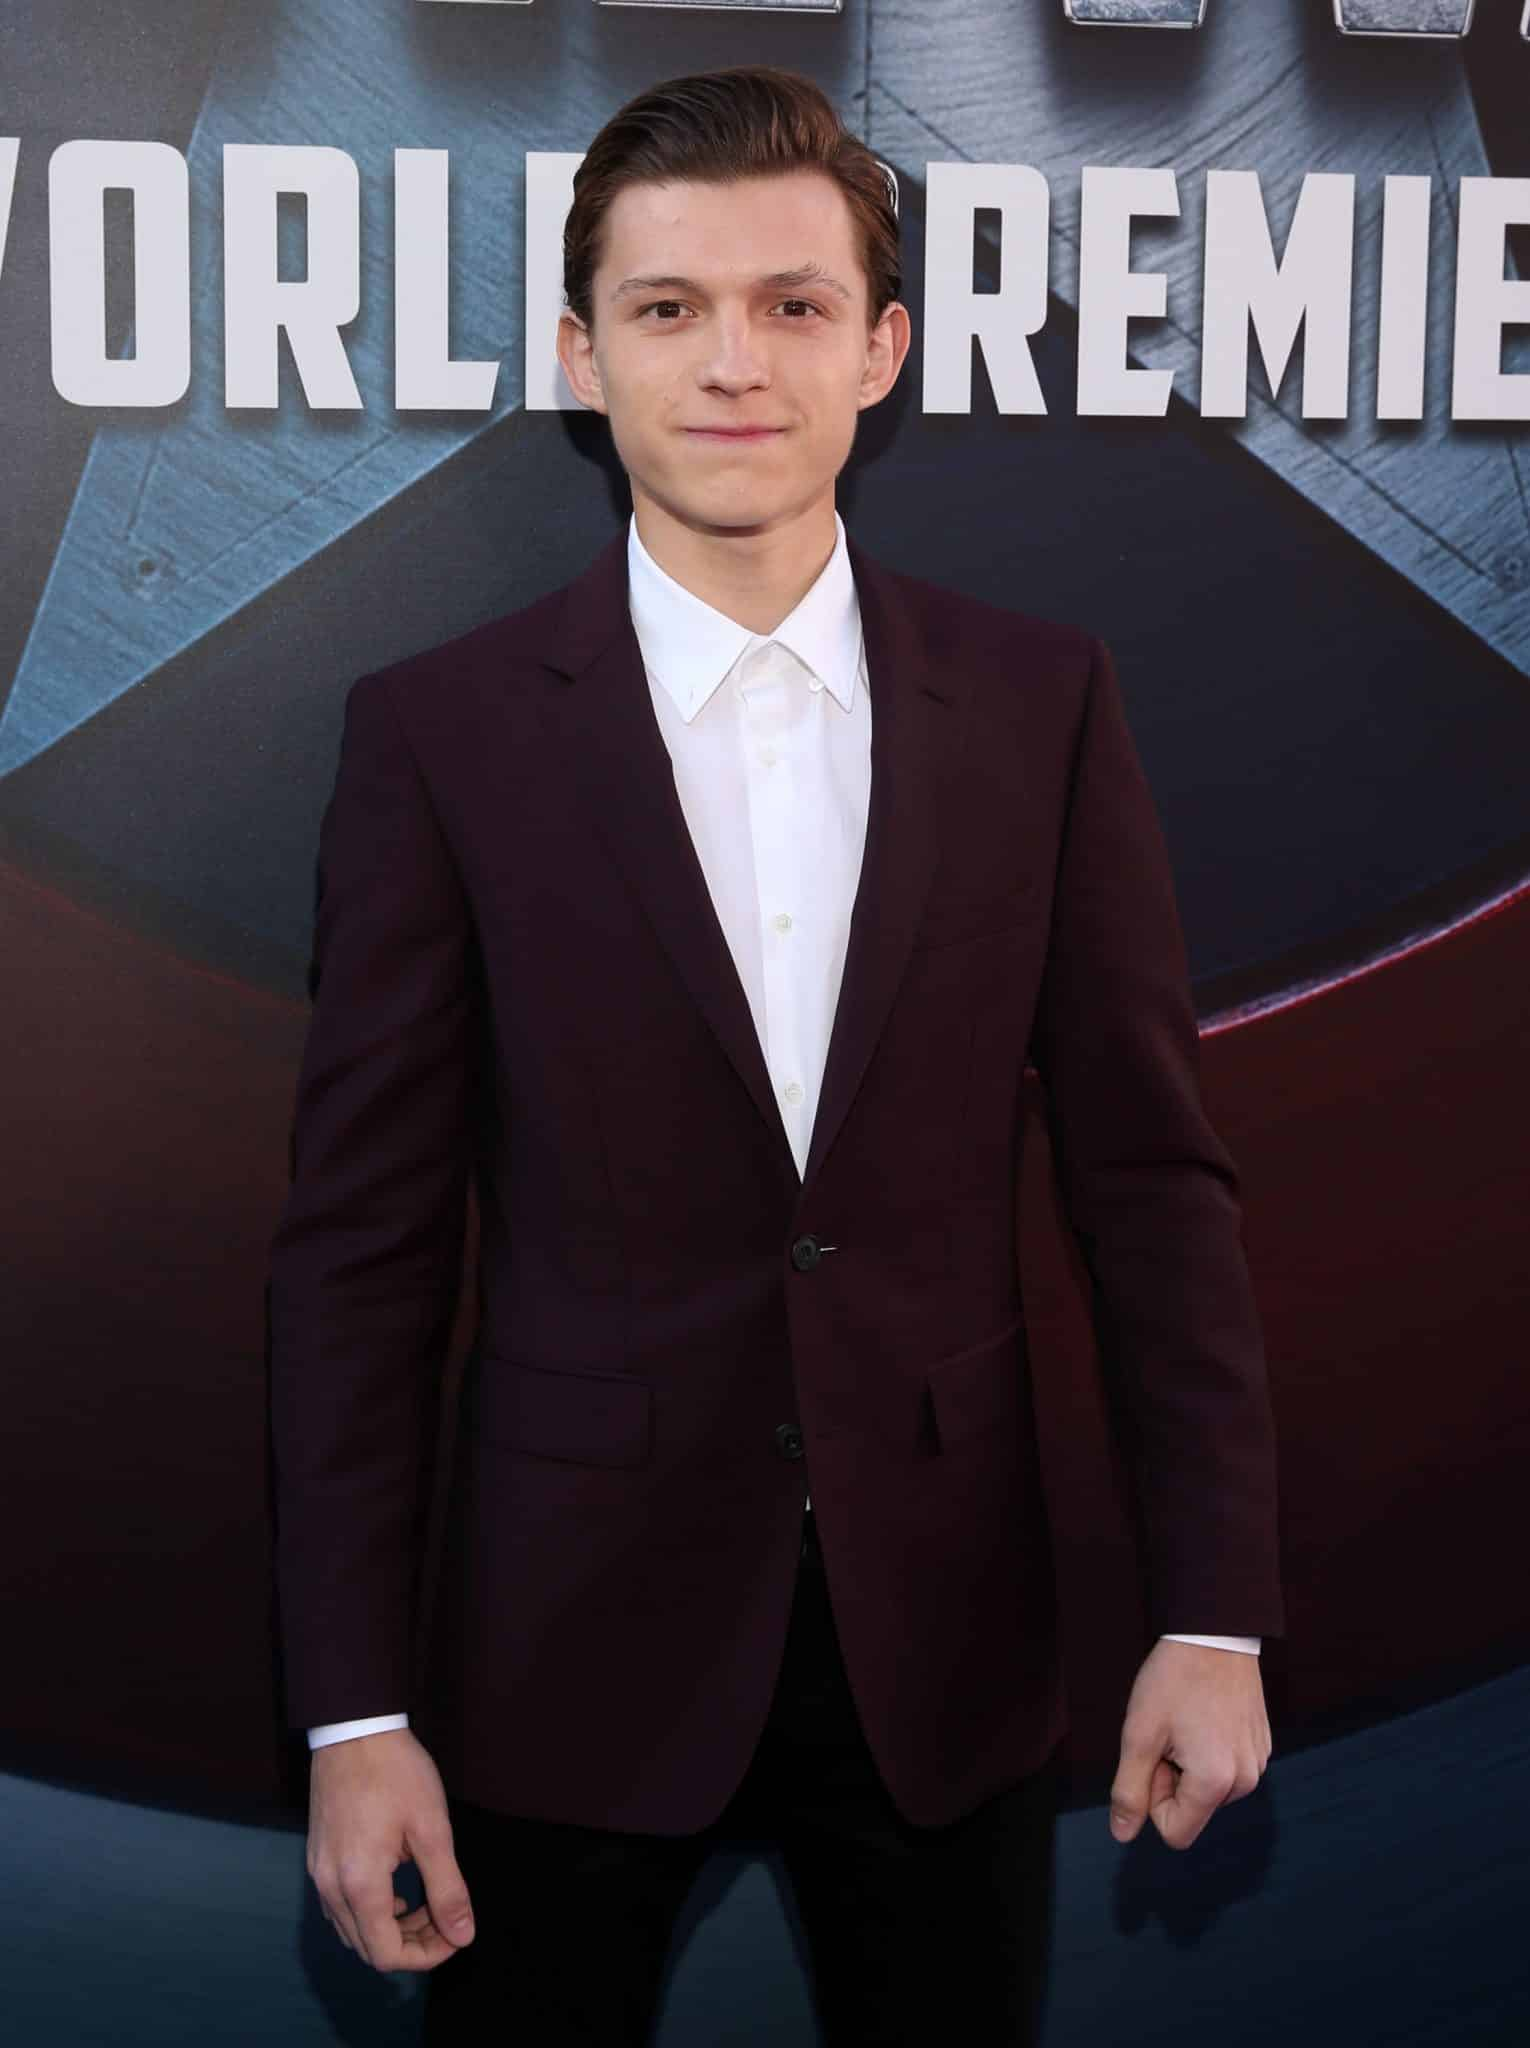 """HOLLYWOOD, CALIFORNIA - APRIL 12: Actor Tom Holland attends The World Premiere of Marvel's """"Captain America: Civil War"""" at Dolby Theatre on April 12, 2016 in Los Angeles, California. (Photo by Jesse Grant/Getty Images for Disney) *** Local Caption *** Tom Holland"""